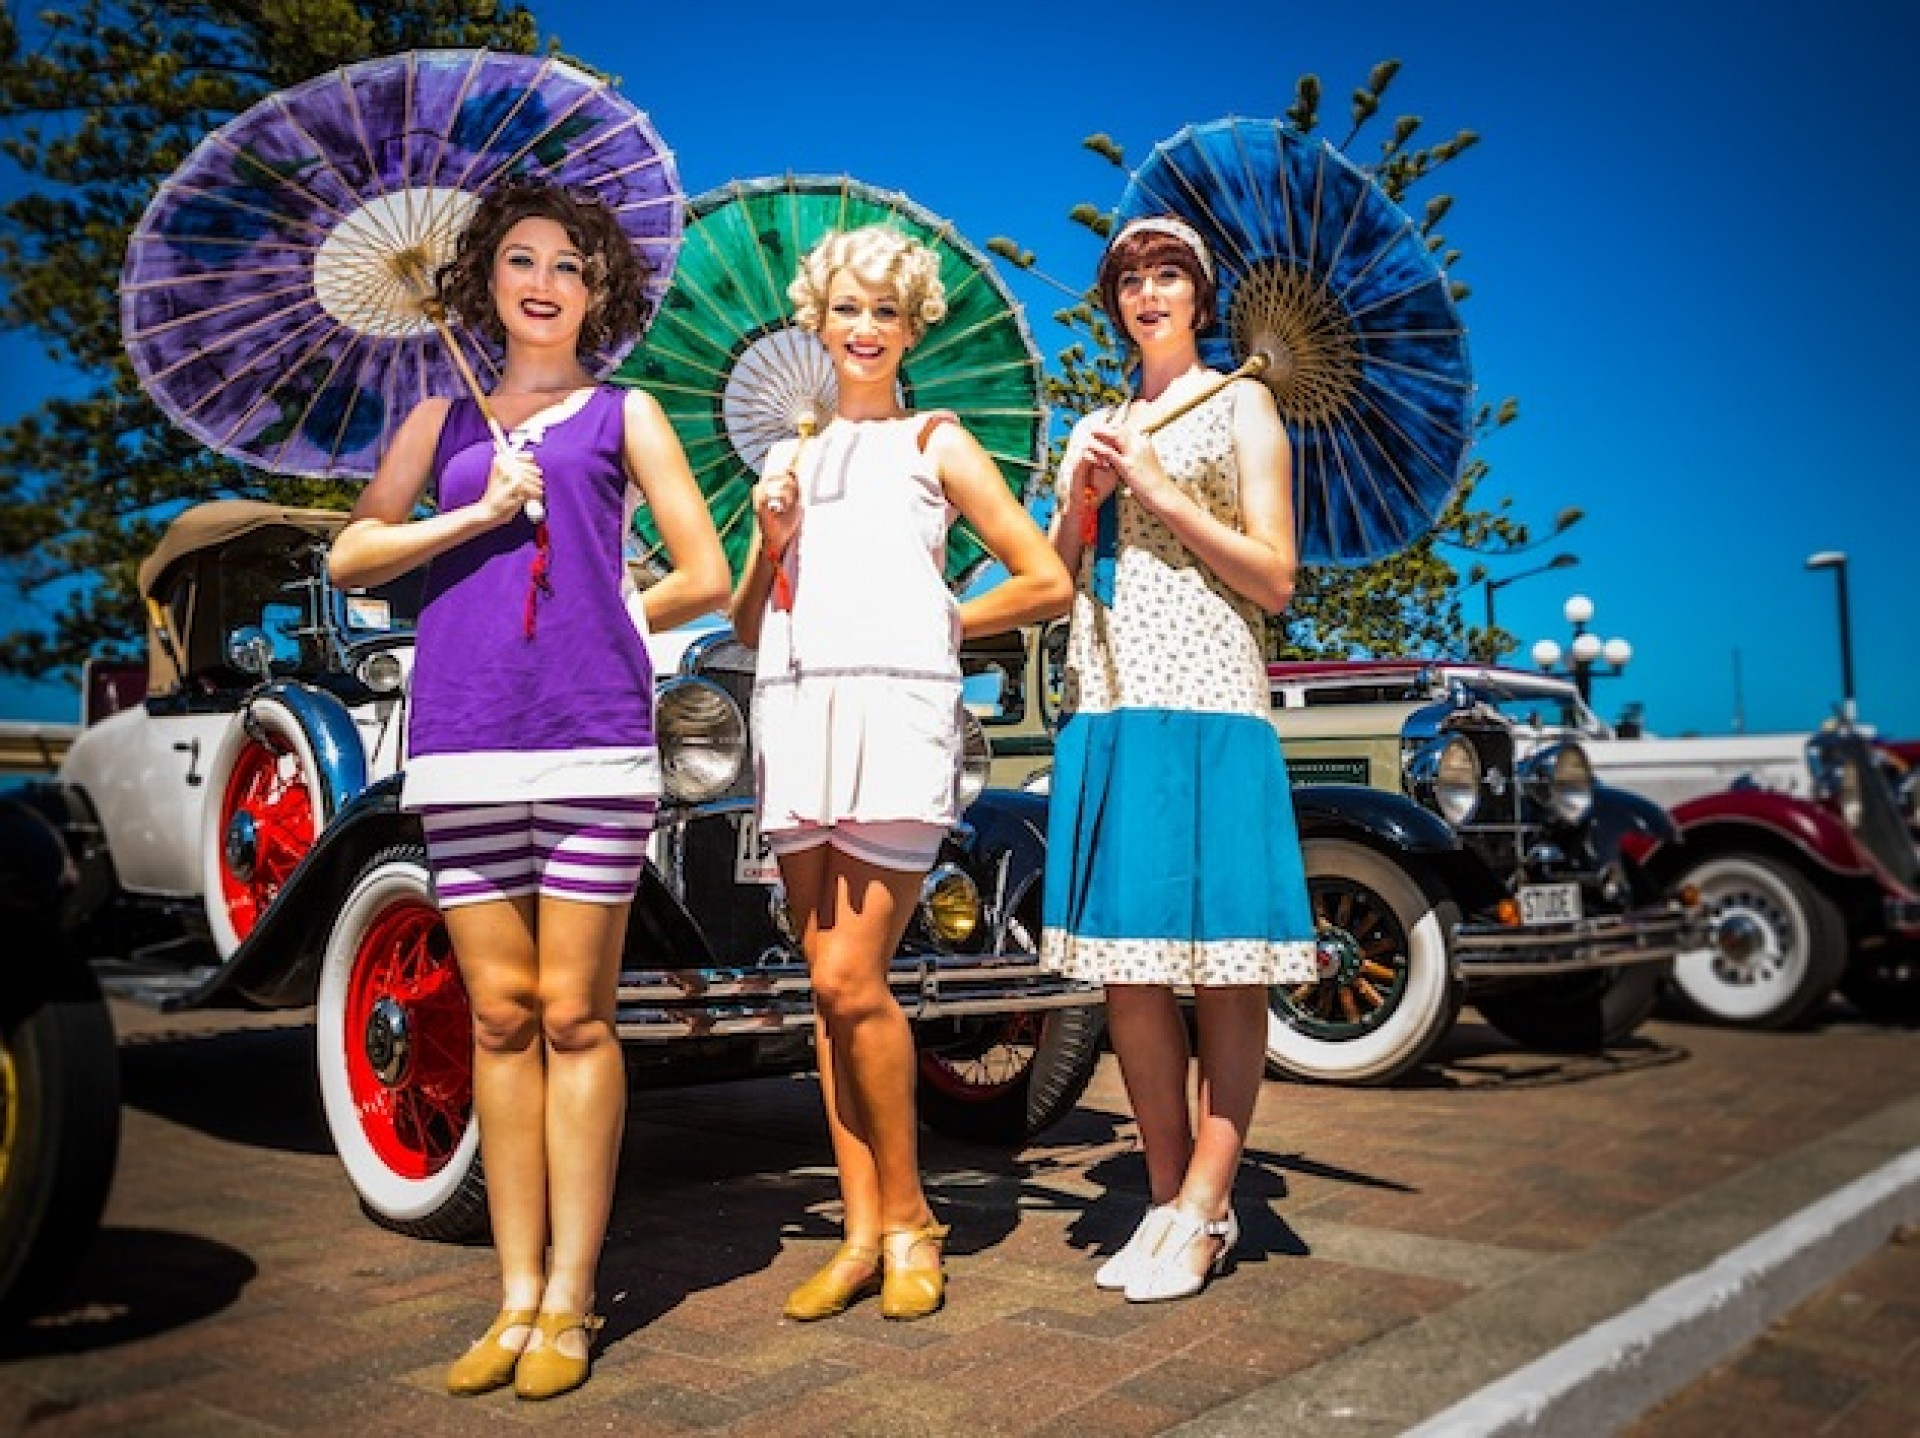 Napier Art Deco Festival Weekend and More